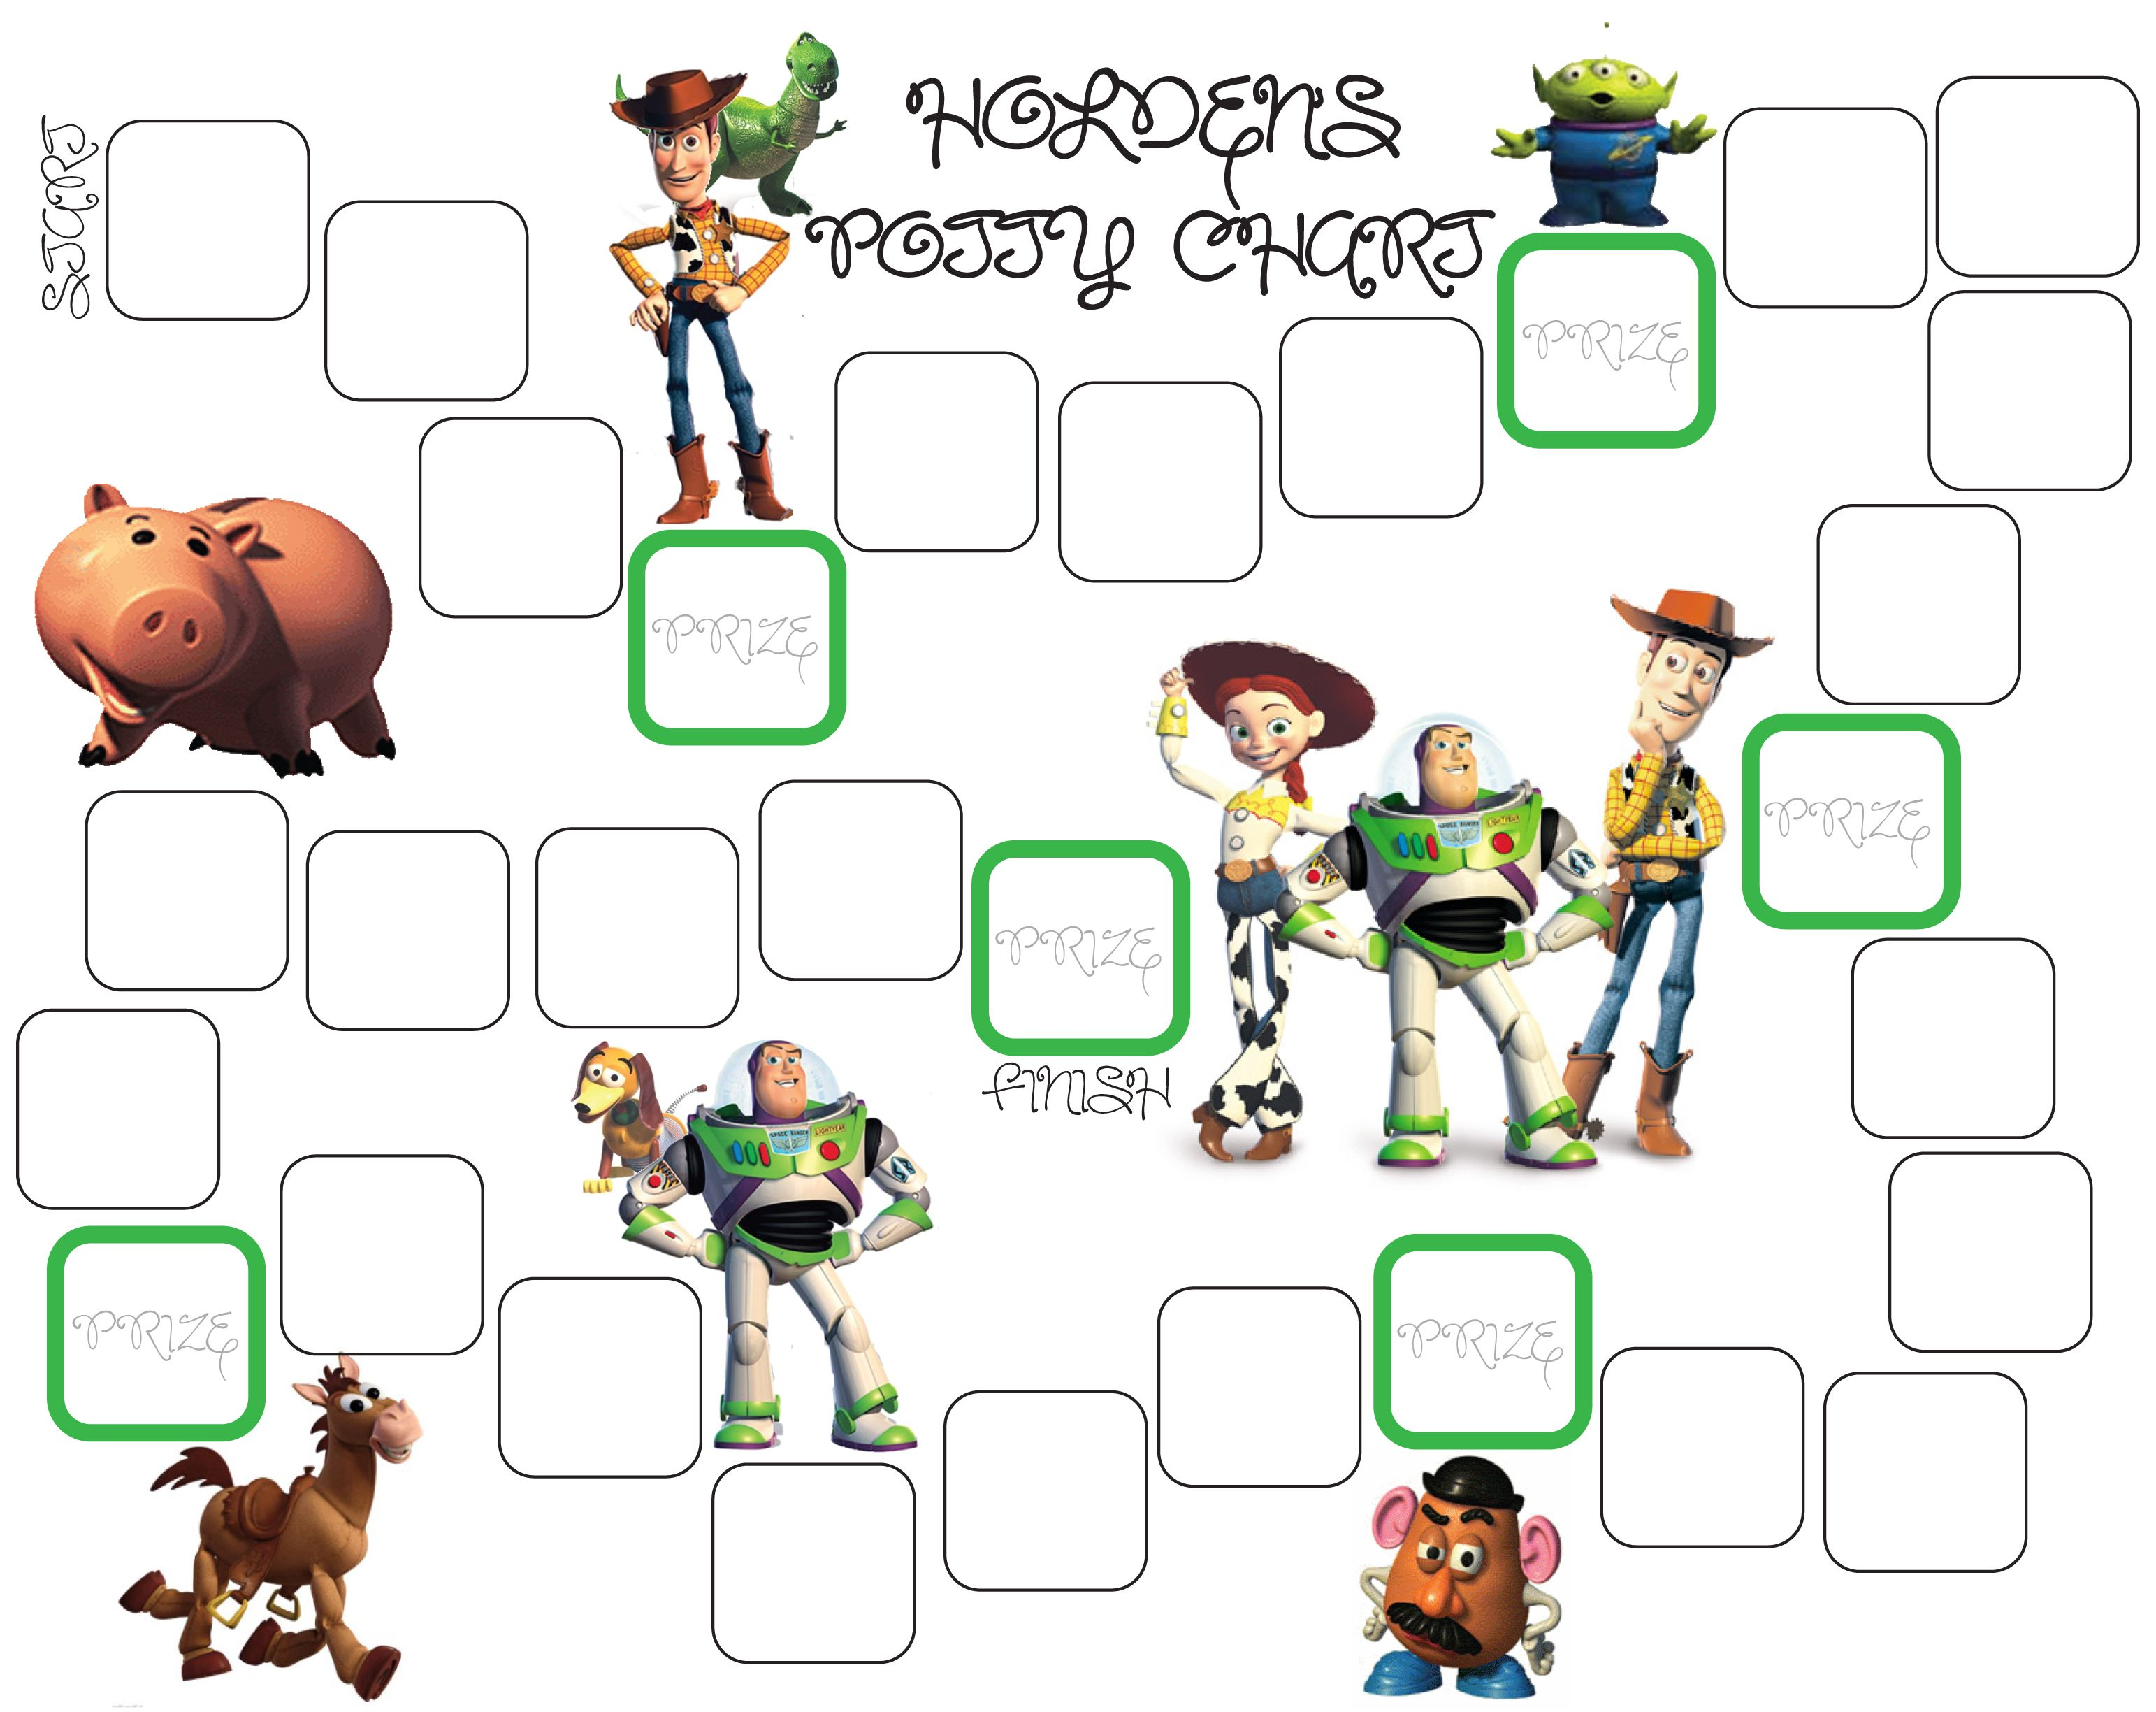 Toy Story Potty Training Chart : Toy story potty chart training pinterest